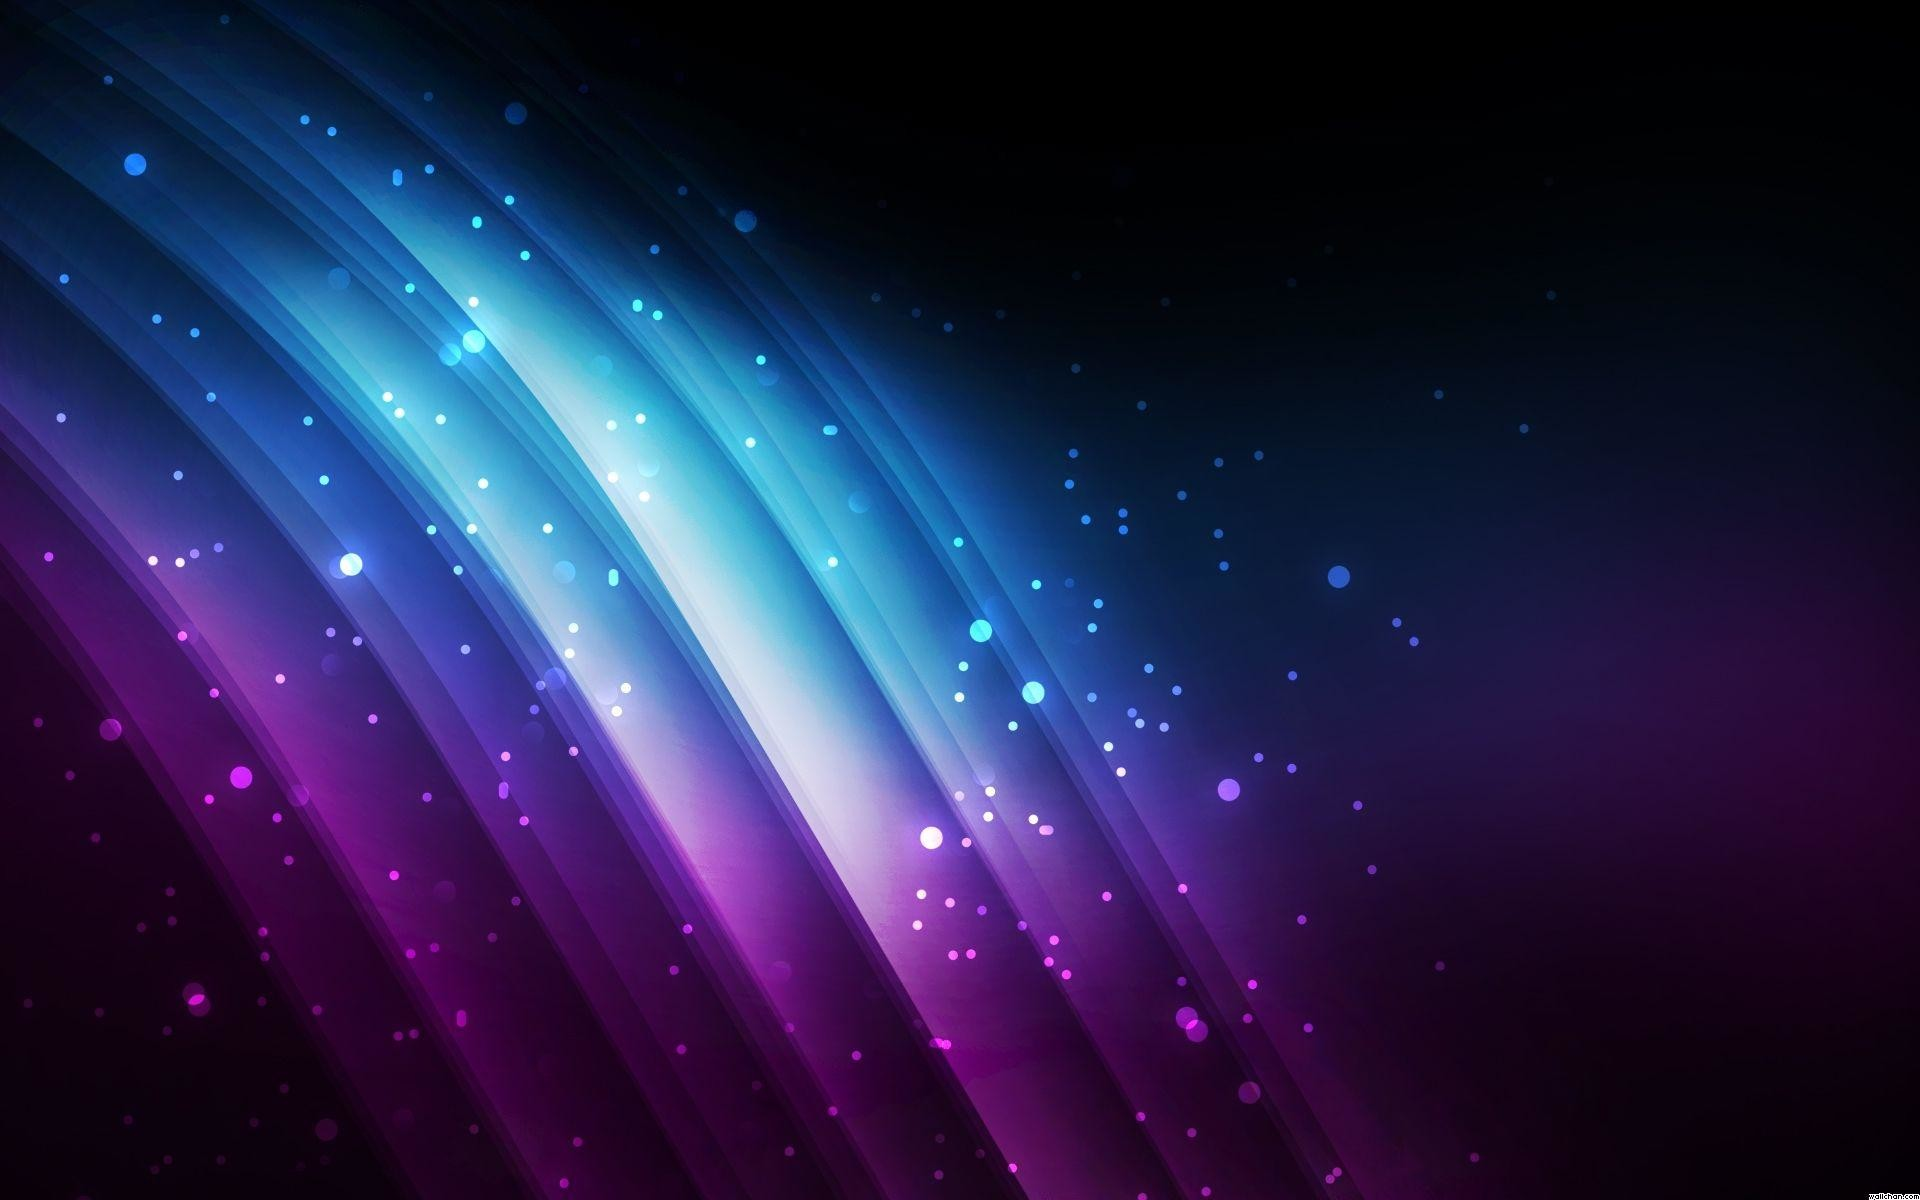 Wallpapers For > Cool Blue And Purple Backgrounds